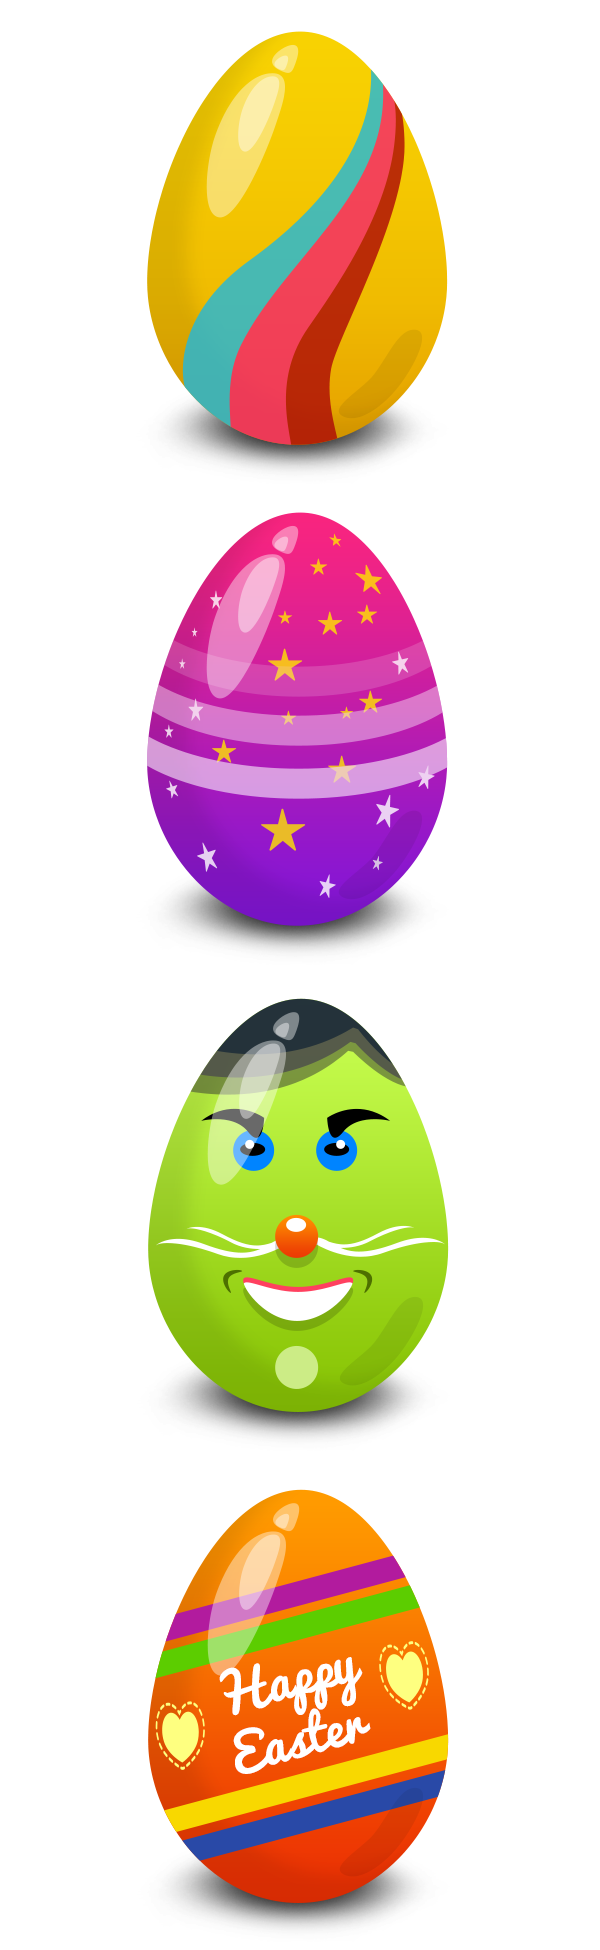 Easter Eggs Vector PSD - GraphicsFuel